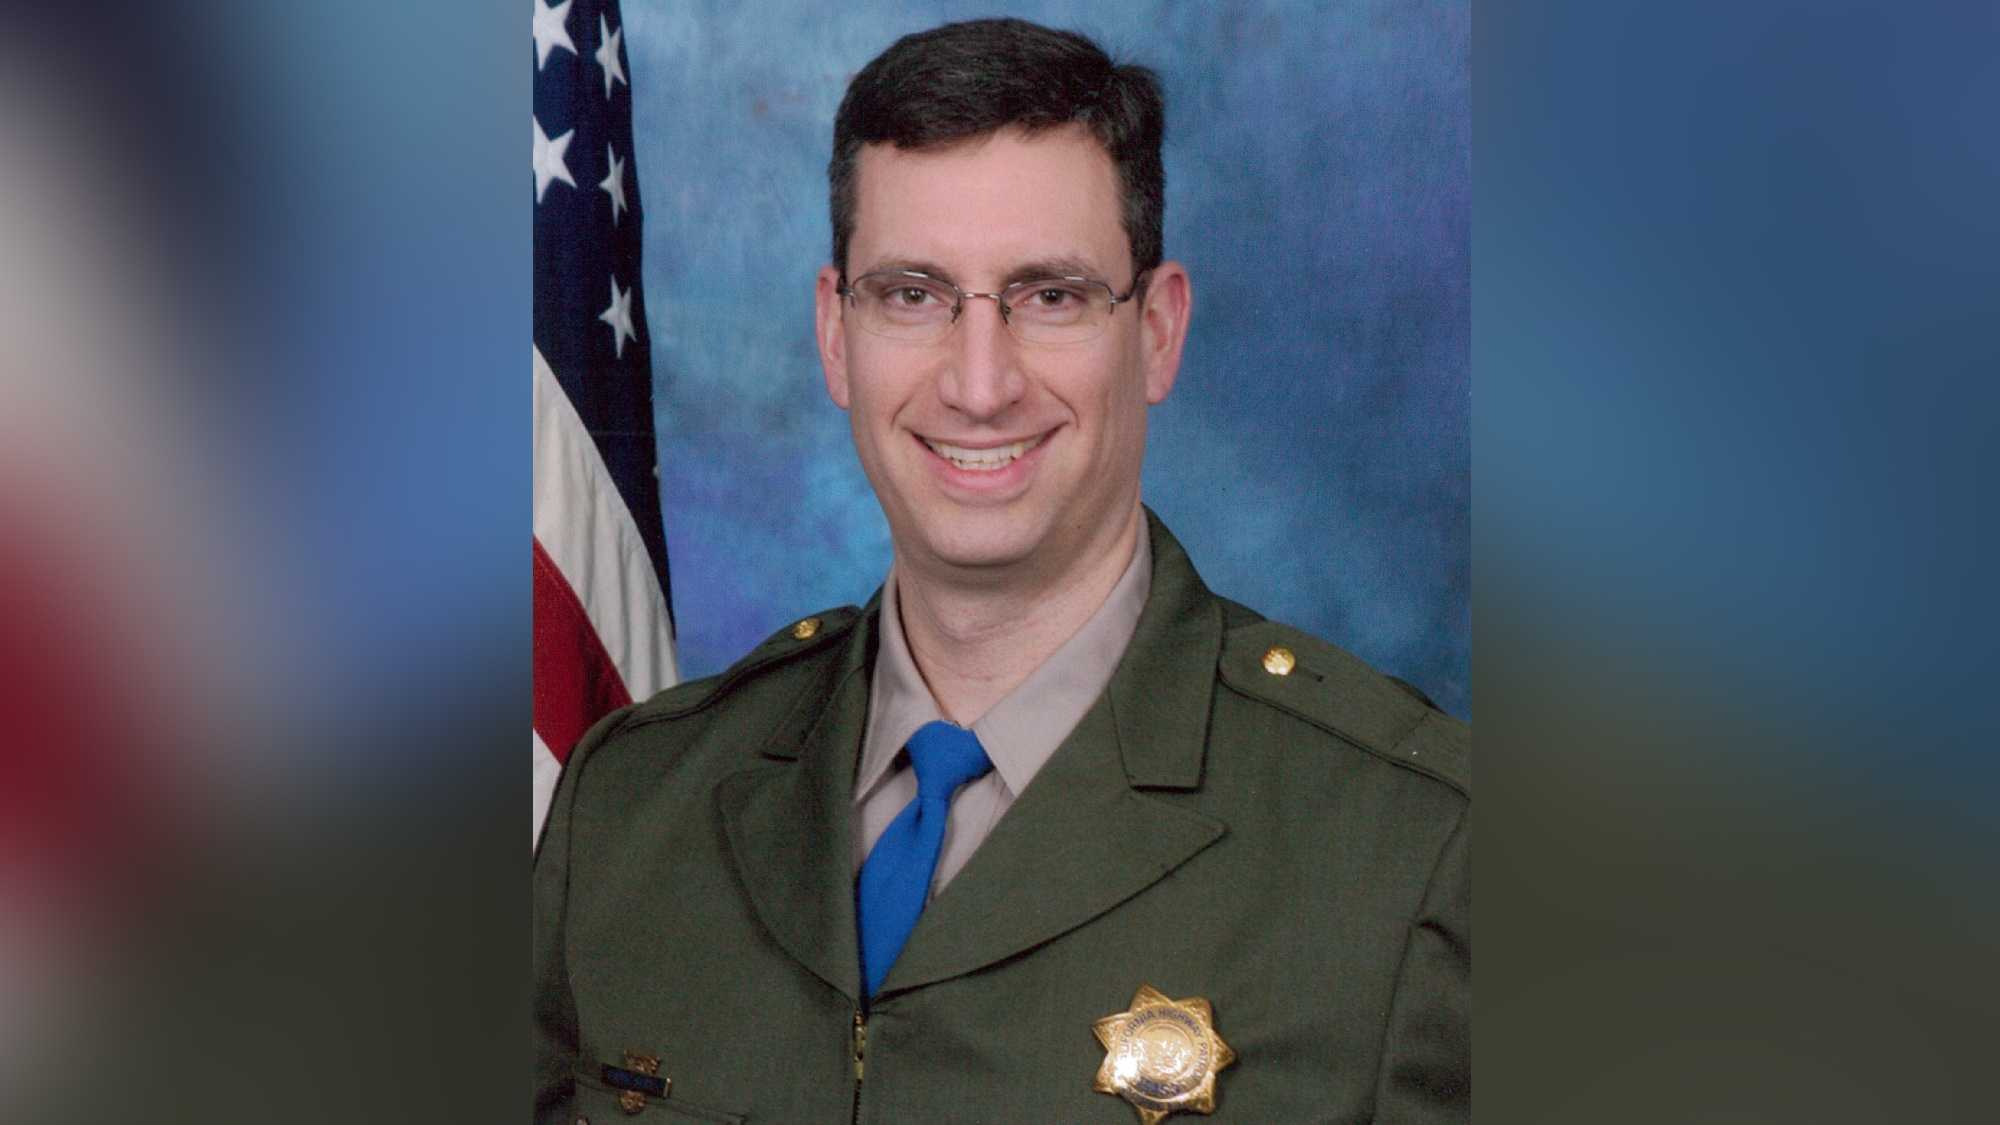 California Highway Patrol Officer Vincent Smith was injured Saturday, May 7, 2016, when a driver suspected of DUI crashed into him on Highway 50 near 16th Street. Smith is an 18-year veteran of the CHP.